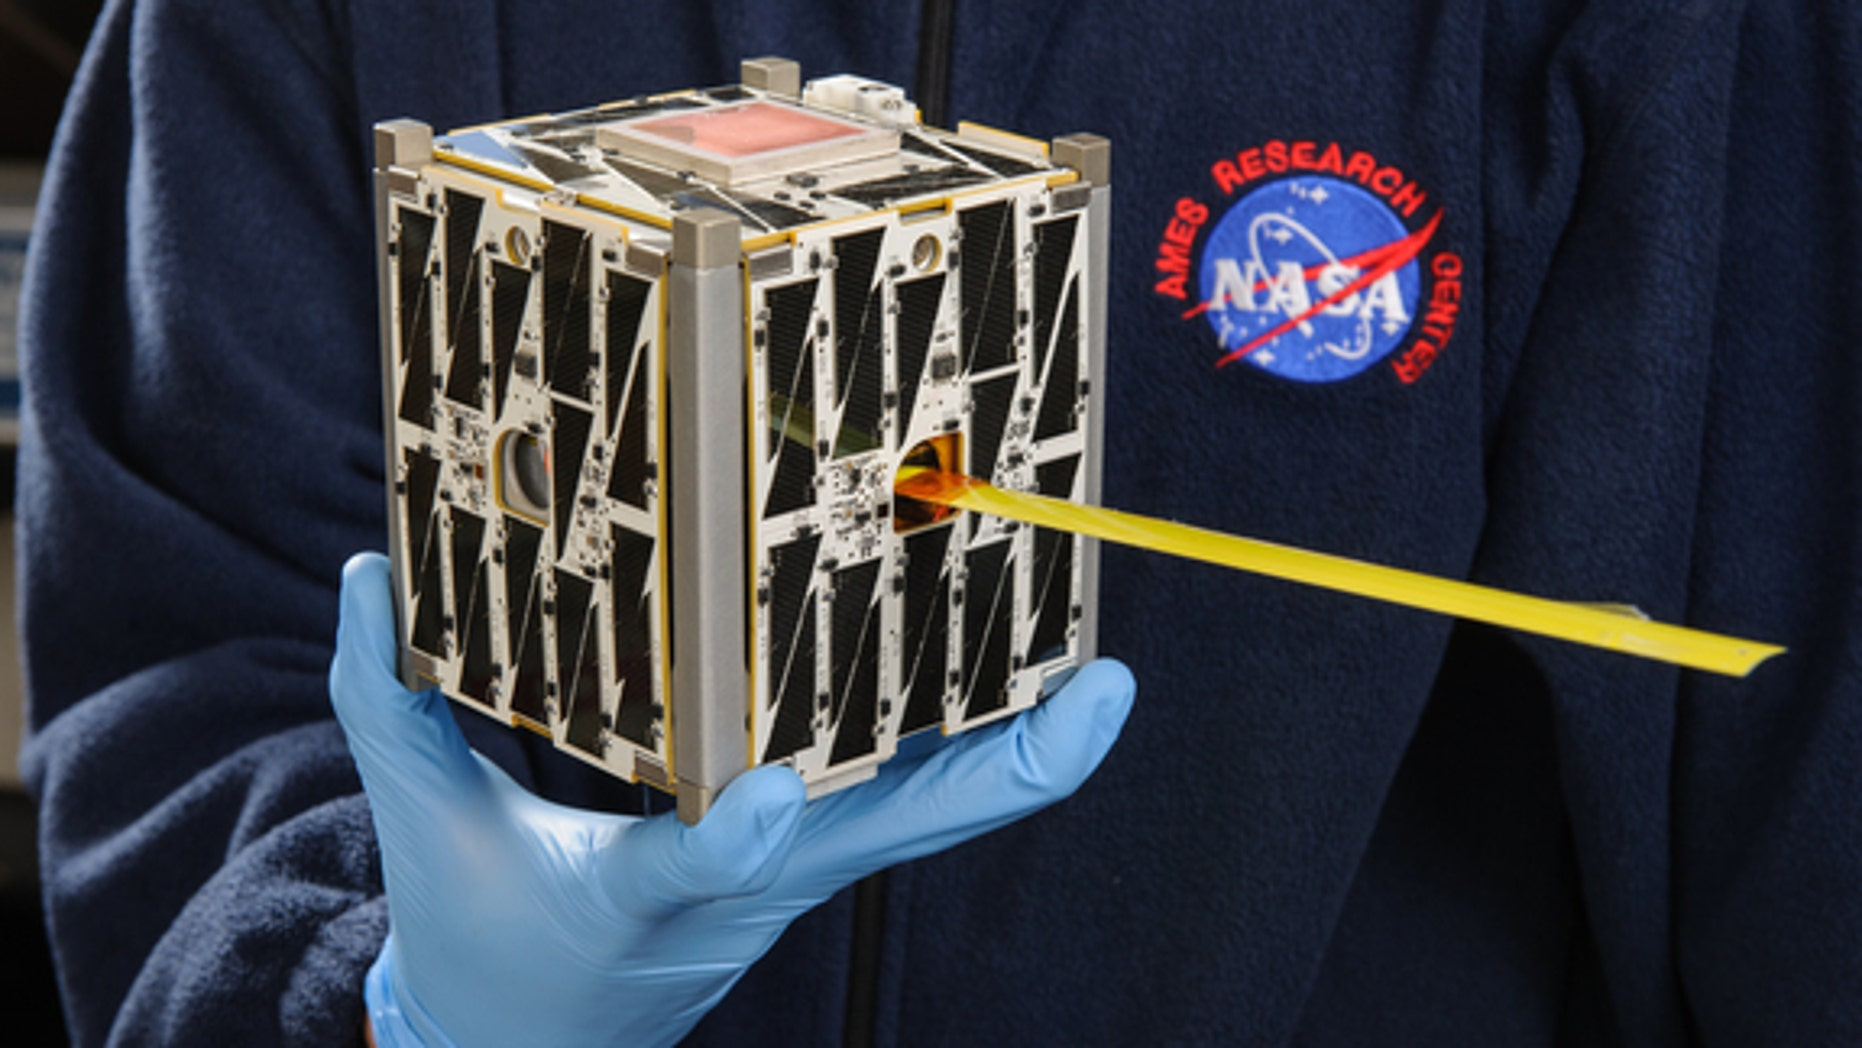 PhoneSat 2.5, developed at NASA's Ames Research Center in Moffett Field, California and launched in March 2014, uses commercially available smartphone technology to collect data on the long-term performance of consumer technologies used in spac